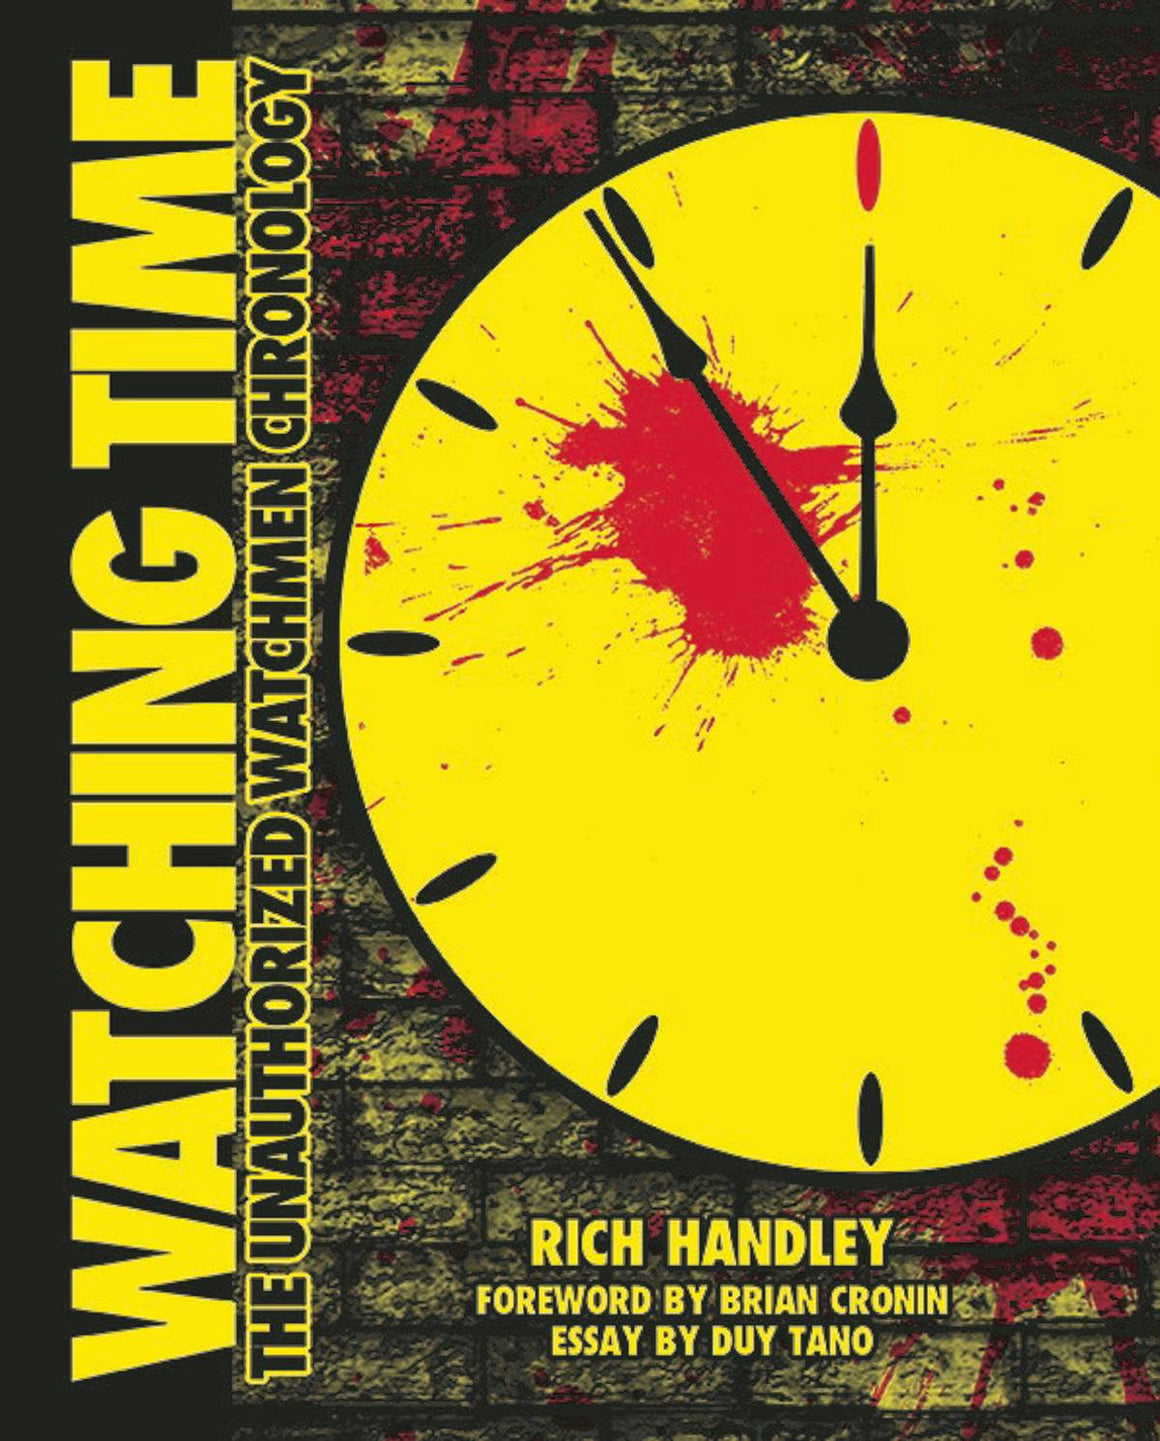 WATCHING TIME UNAUTHORIZED WATCHMEN CHRONOLOGY SC